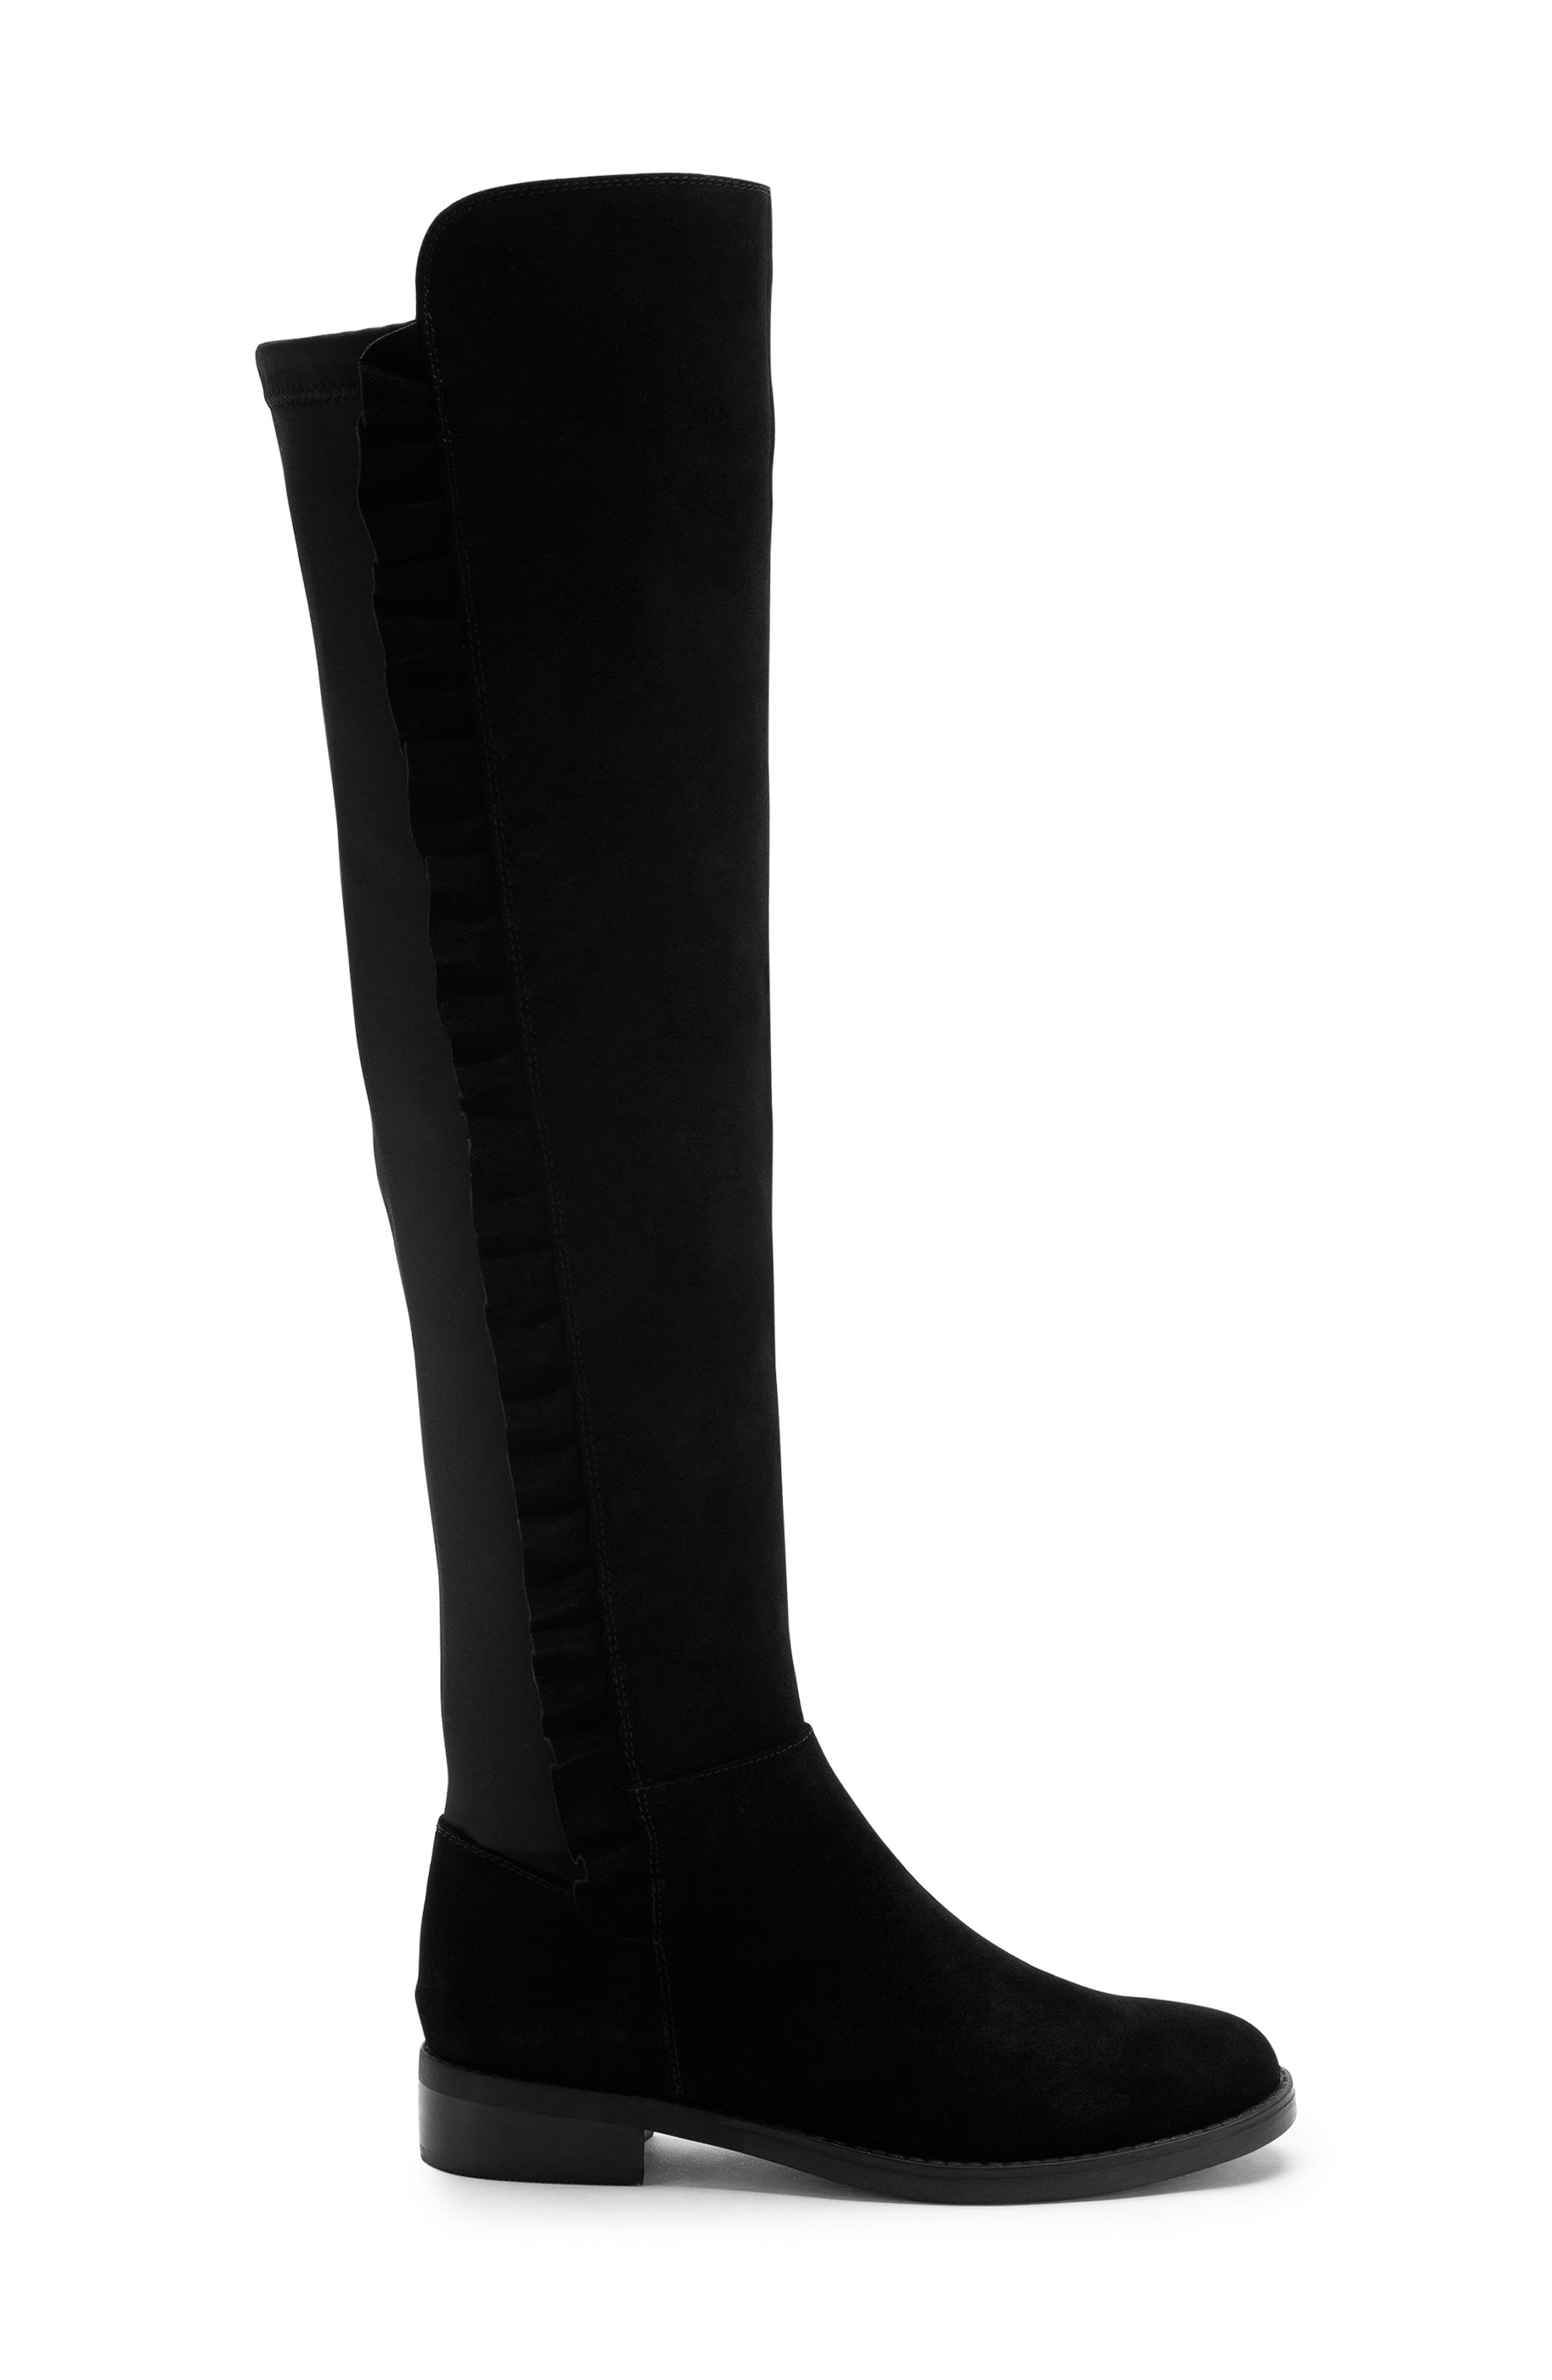 BLONDO, Ethos Over the Knee Waterproof Stretch Boot, Alternate thumbnail 3, color, BLACK SUEDE